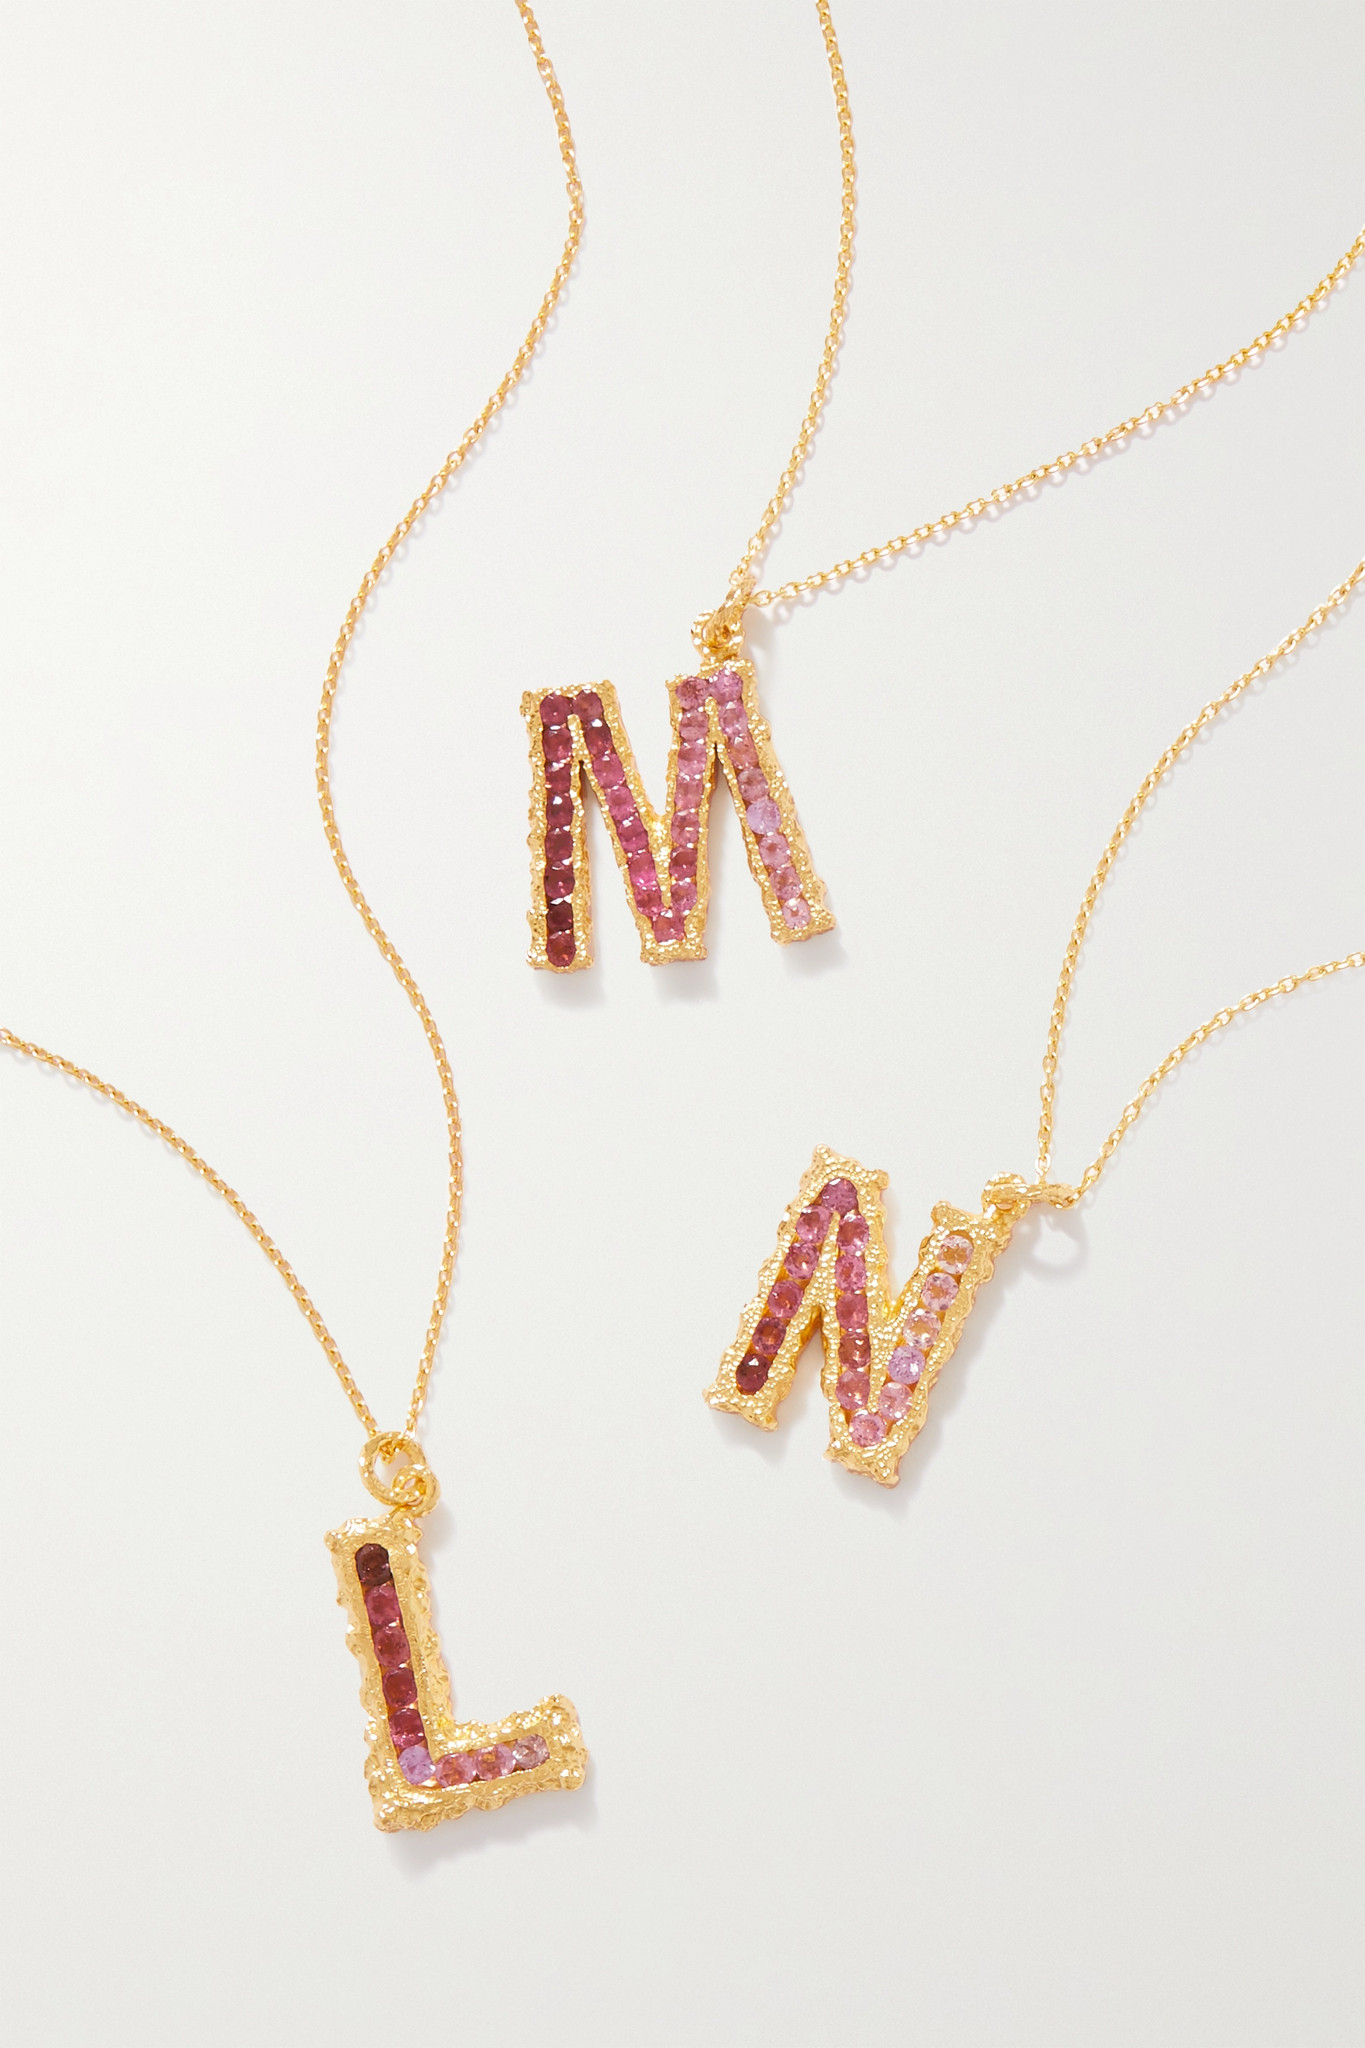 PACHAREE - Alphabet Gold-plated Emerald Necklace - Pink - K